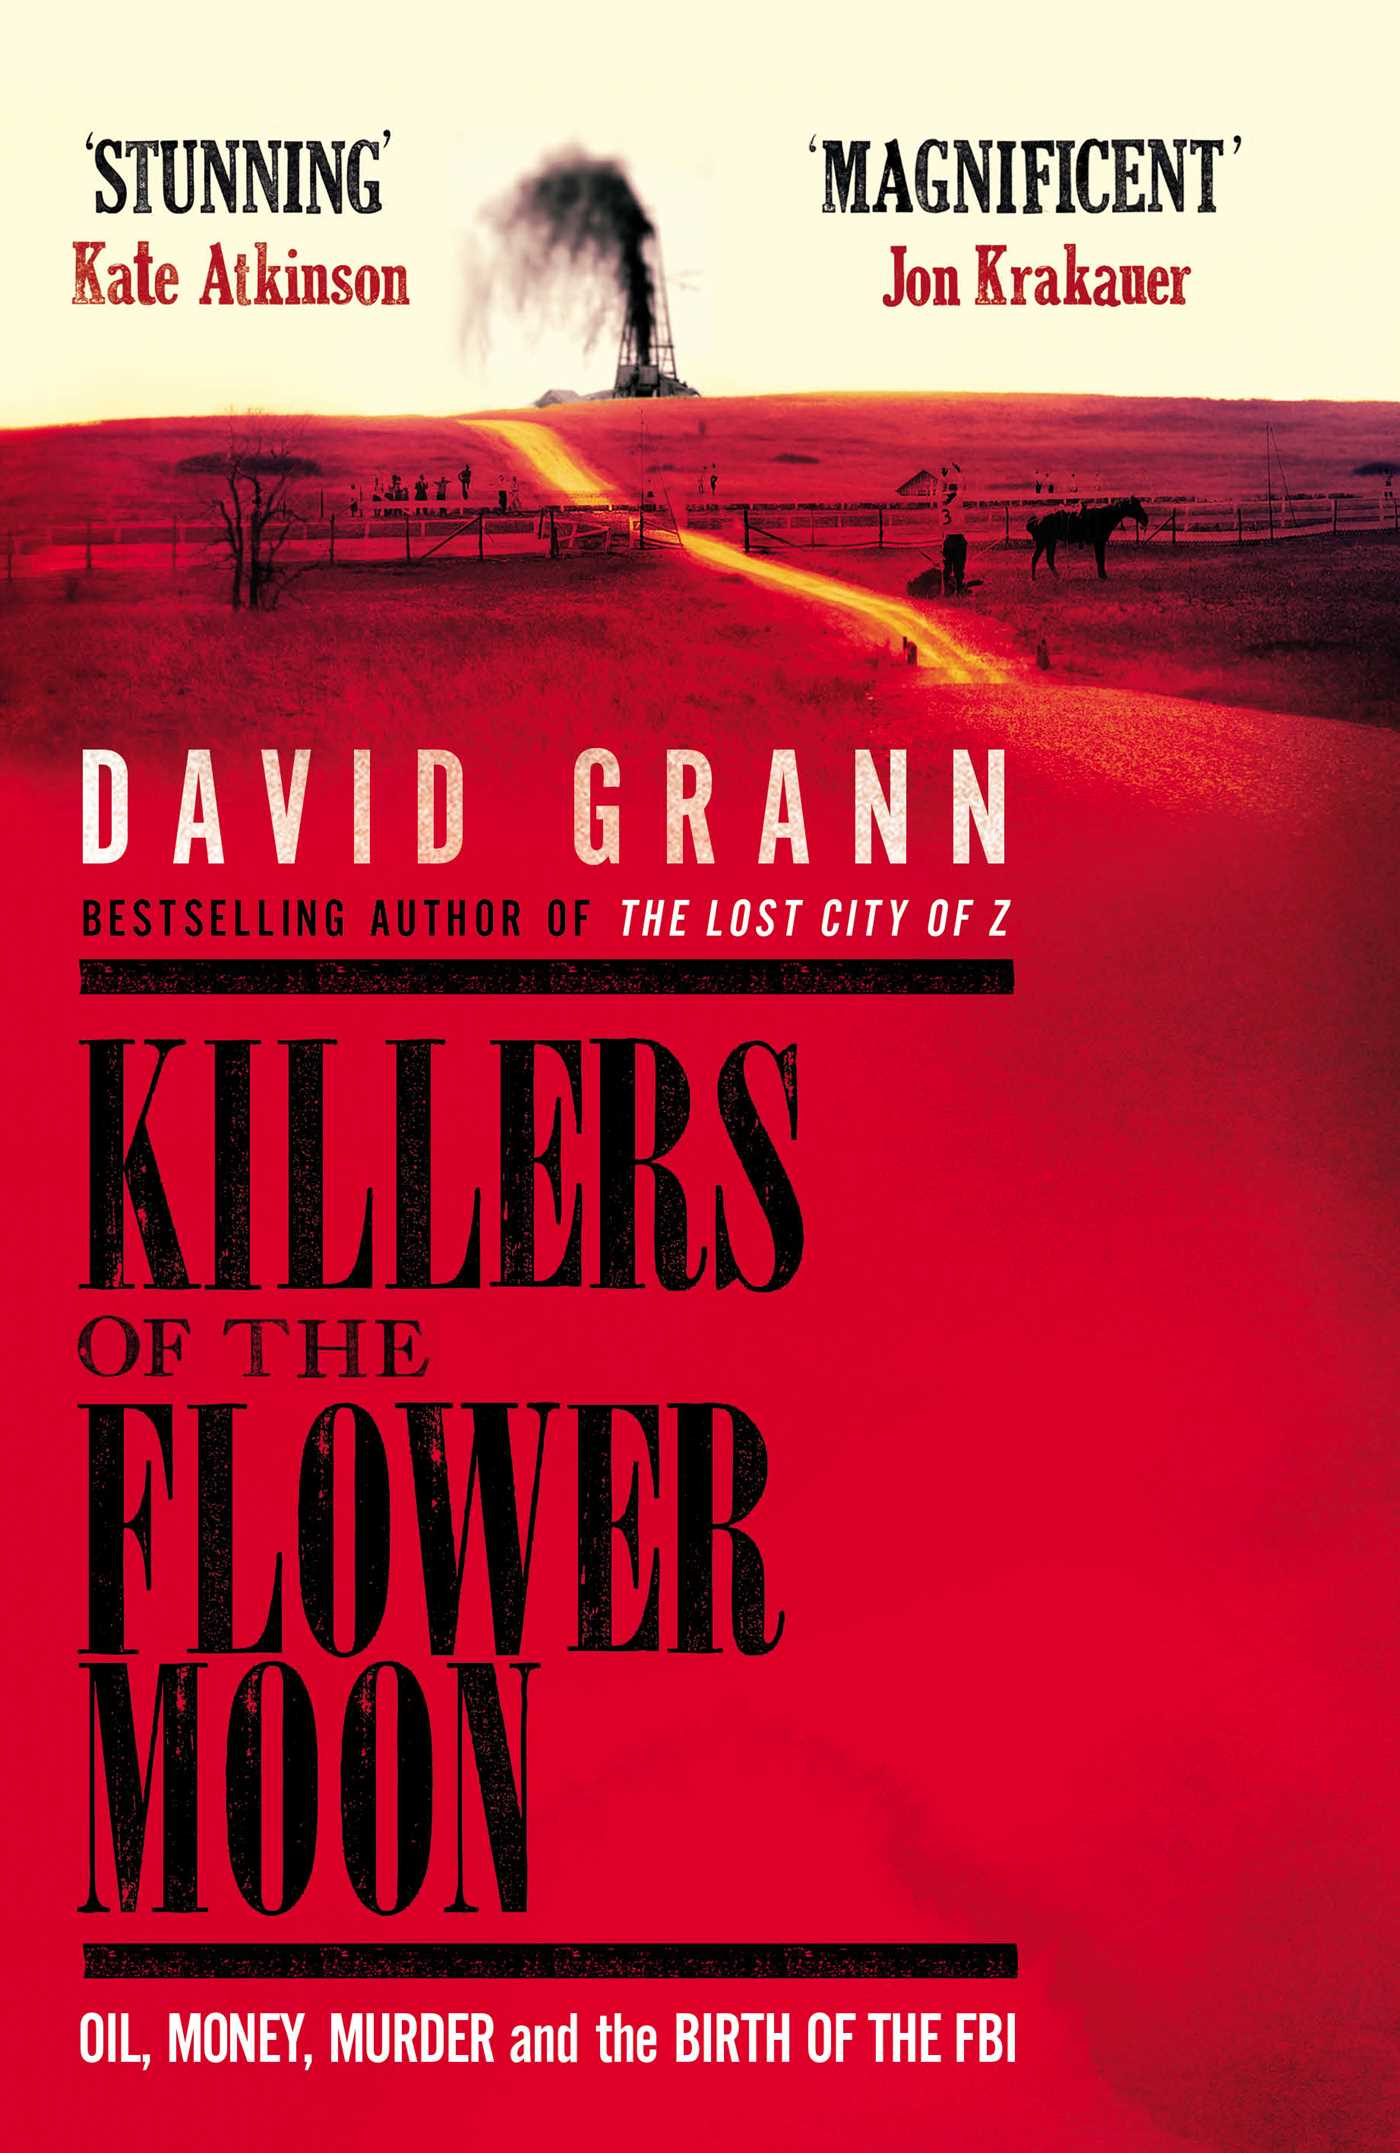 Killers of the flower moon 9780857209023 hr